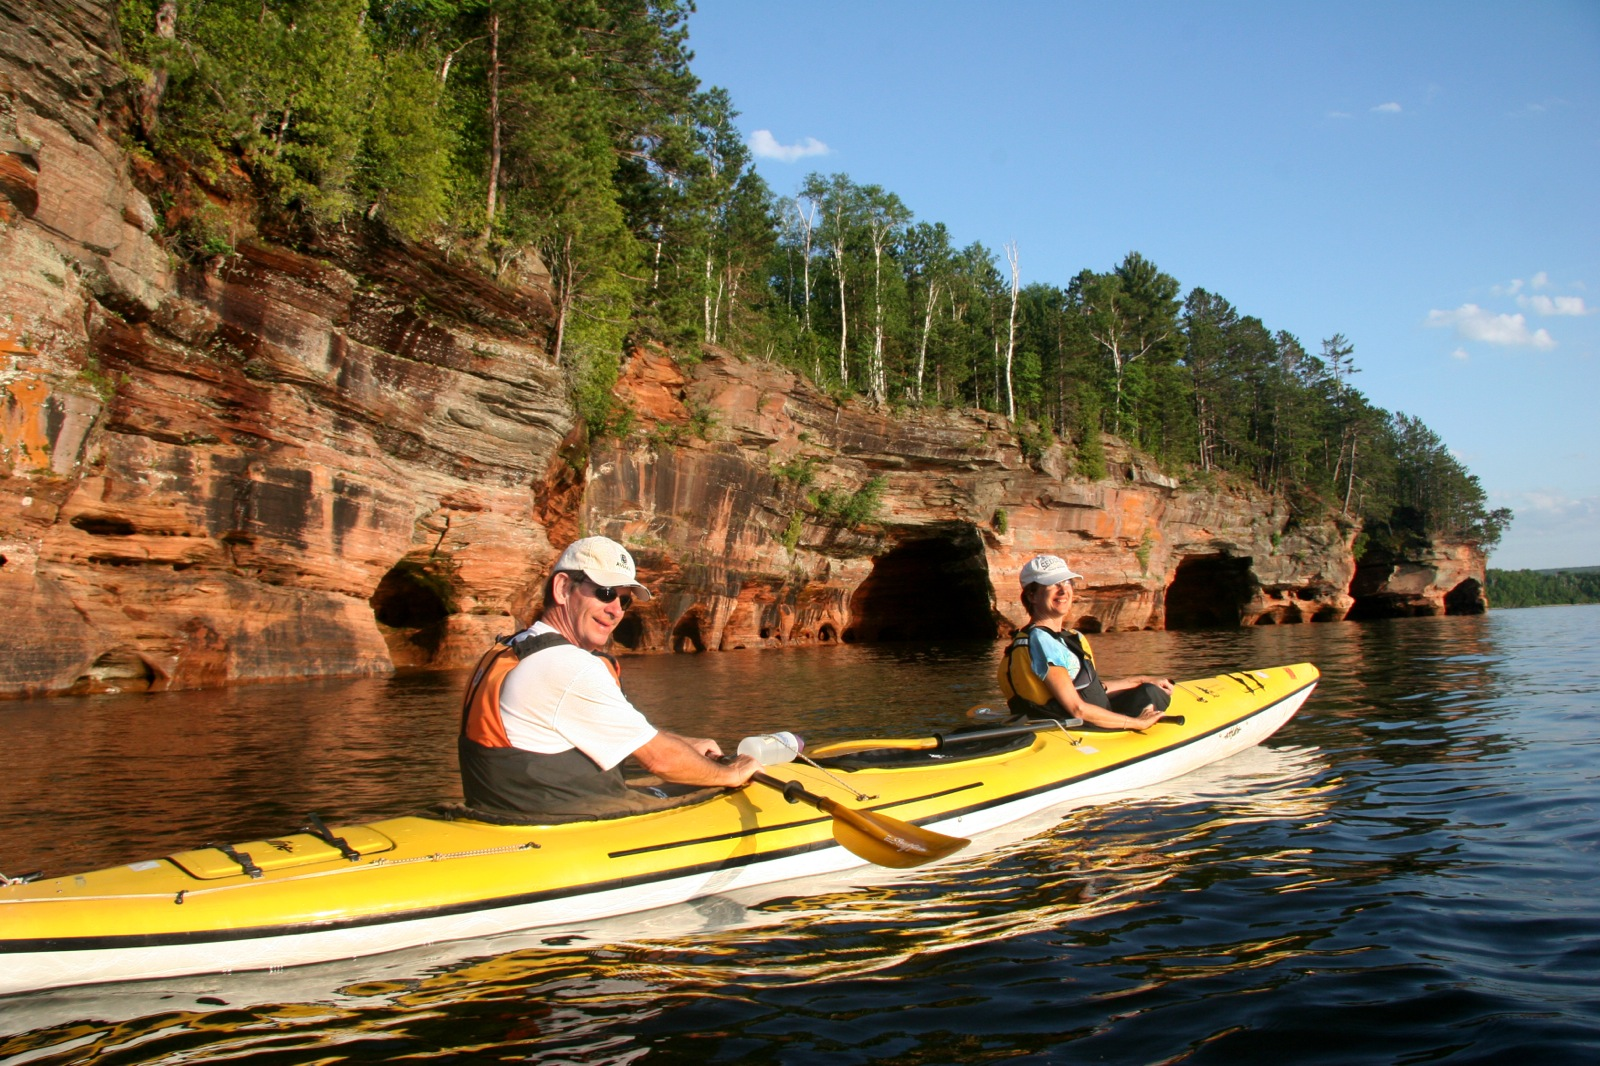 Two kayakers look back at the camera as they paddle a tandem kayak with sandstone cliffs in the background.